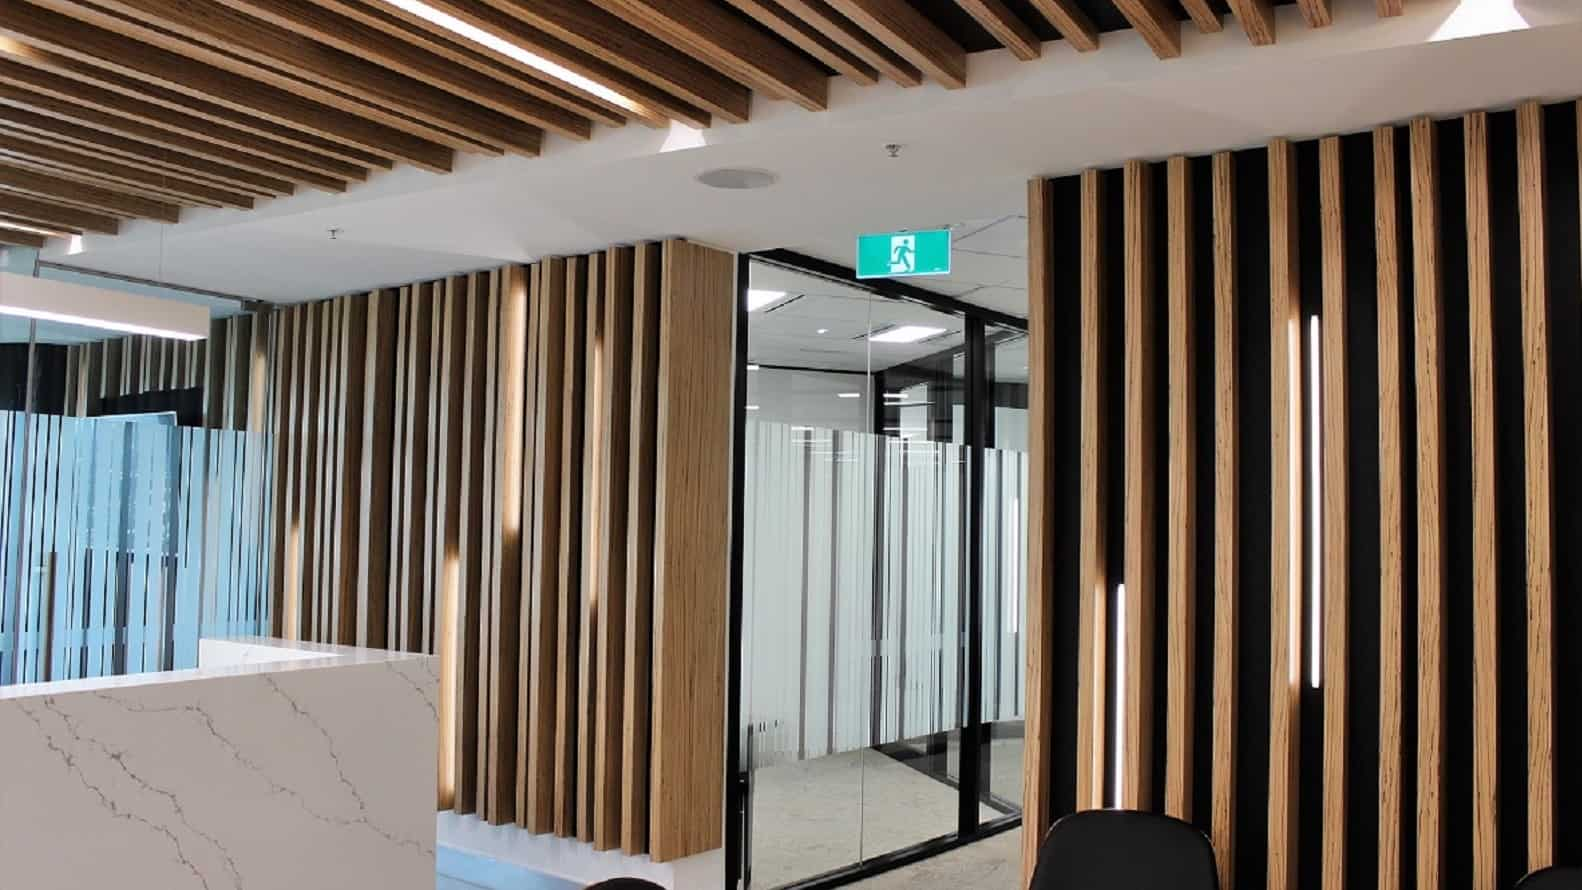 exposed vertical wood ceiling beams with matching wood panel for walls